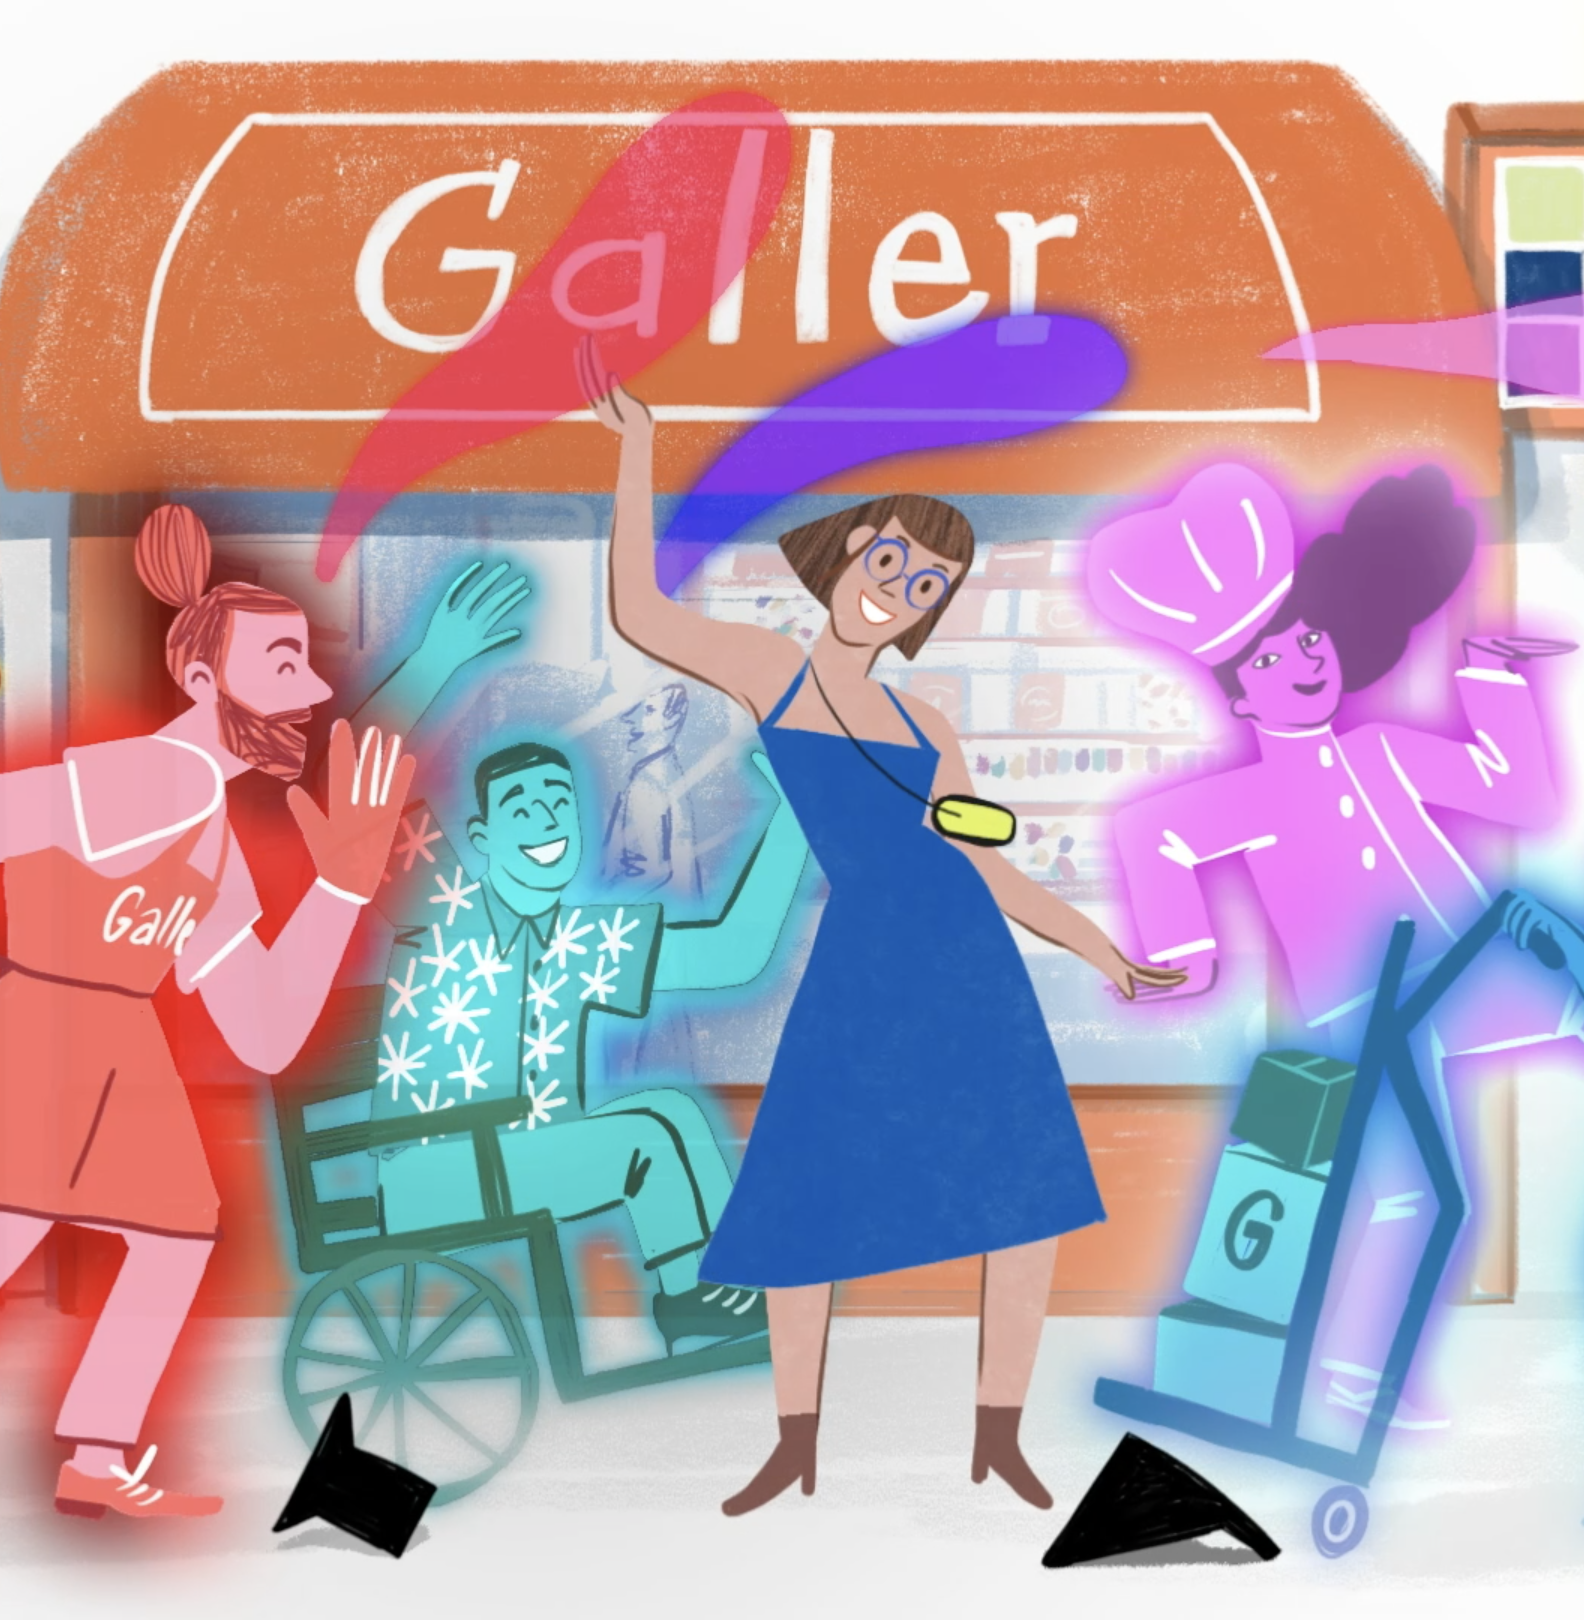 Galler 45 years anniversary campaign